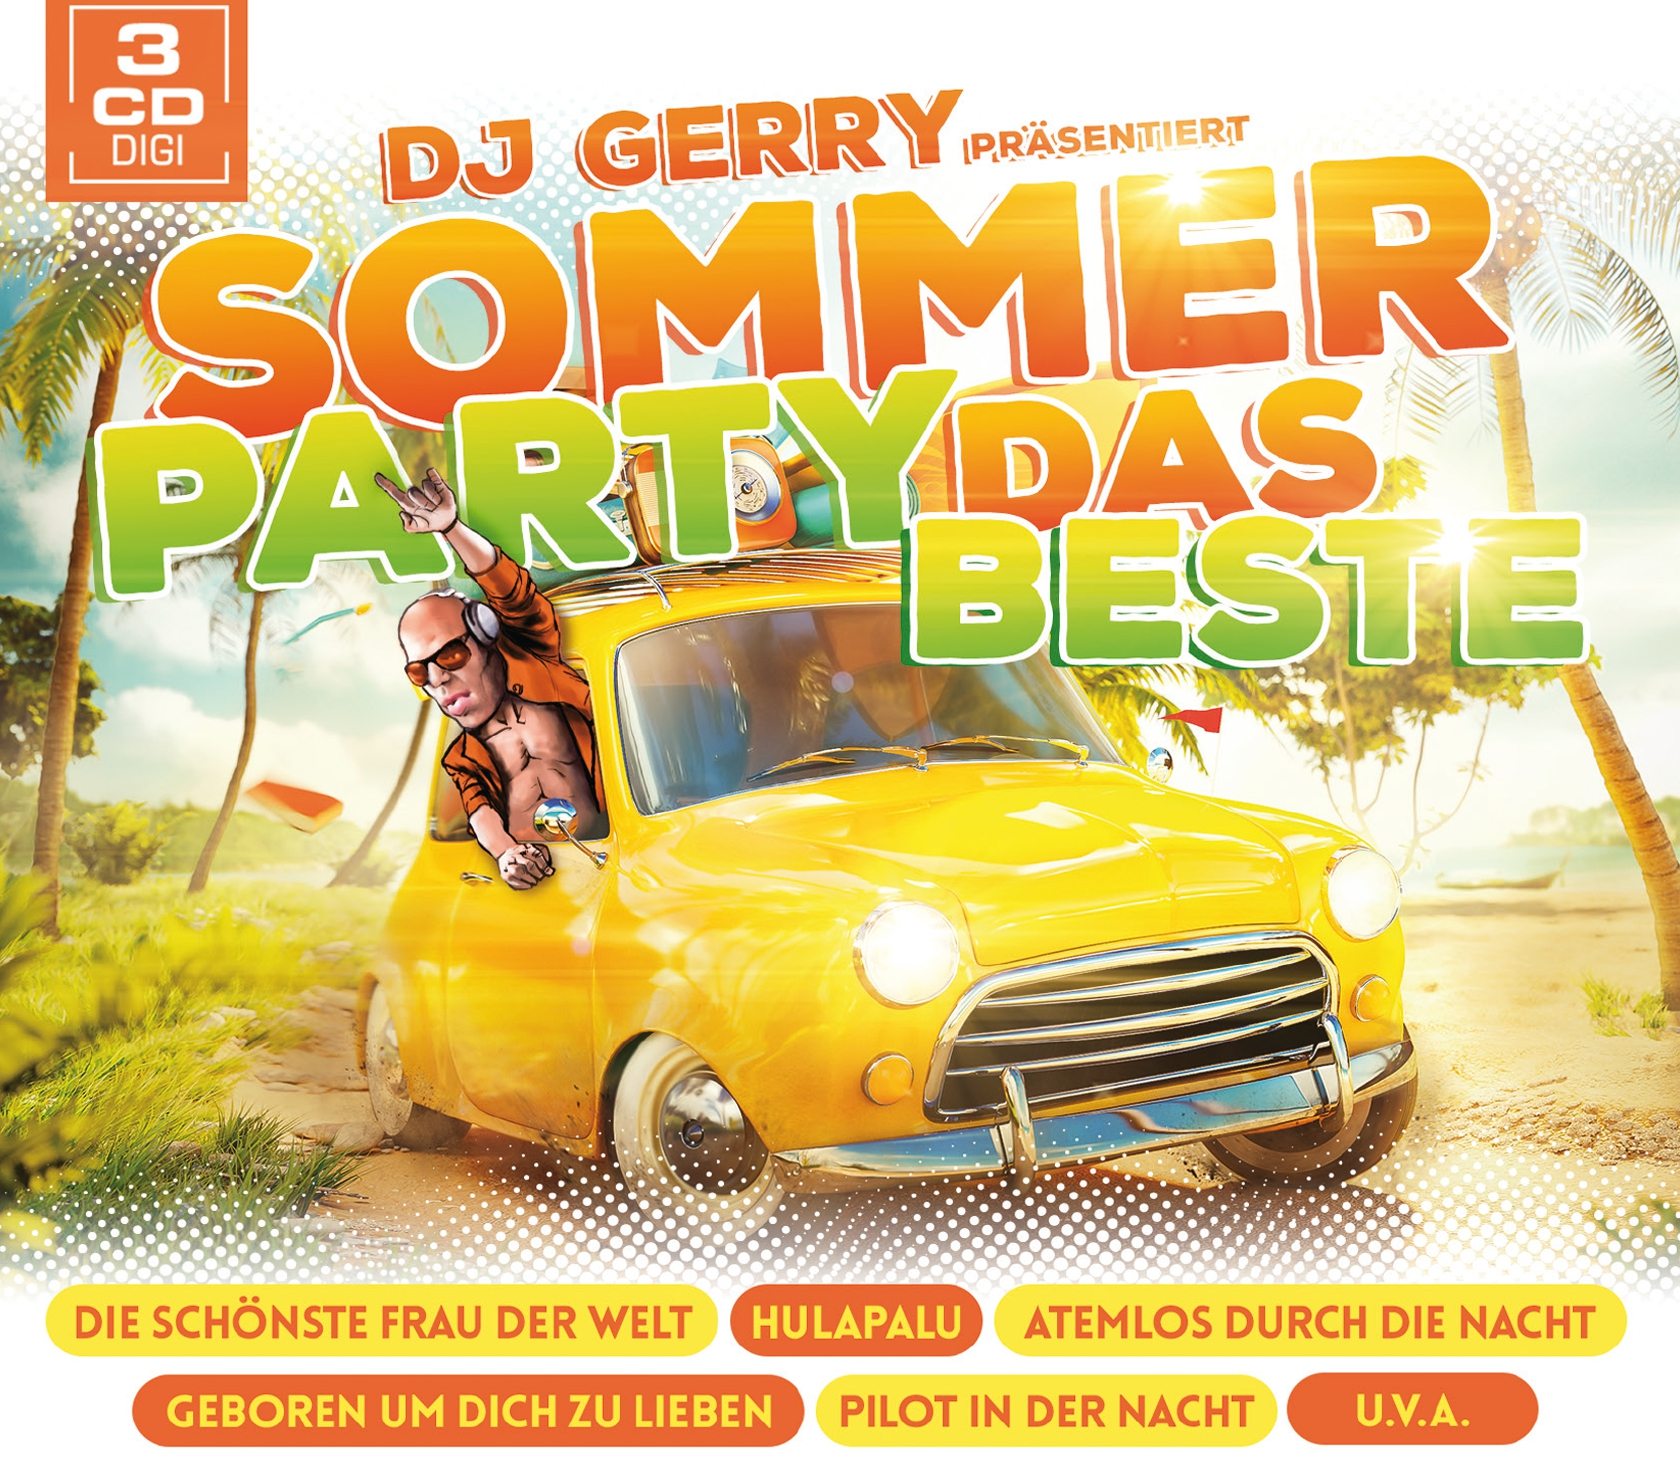 DJ Gerry präs. Sommer Party - Das Beste (3CD 2017)